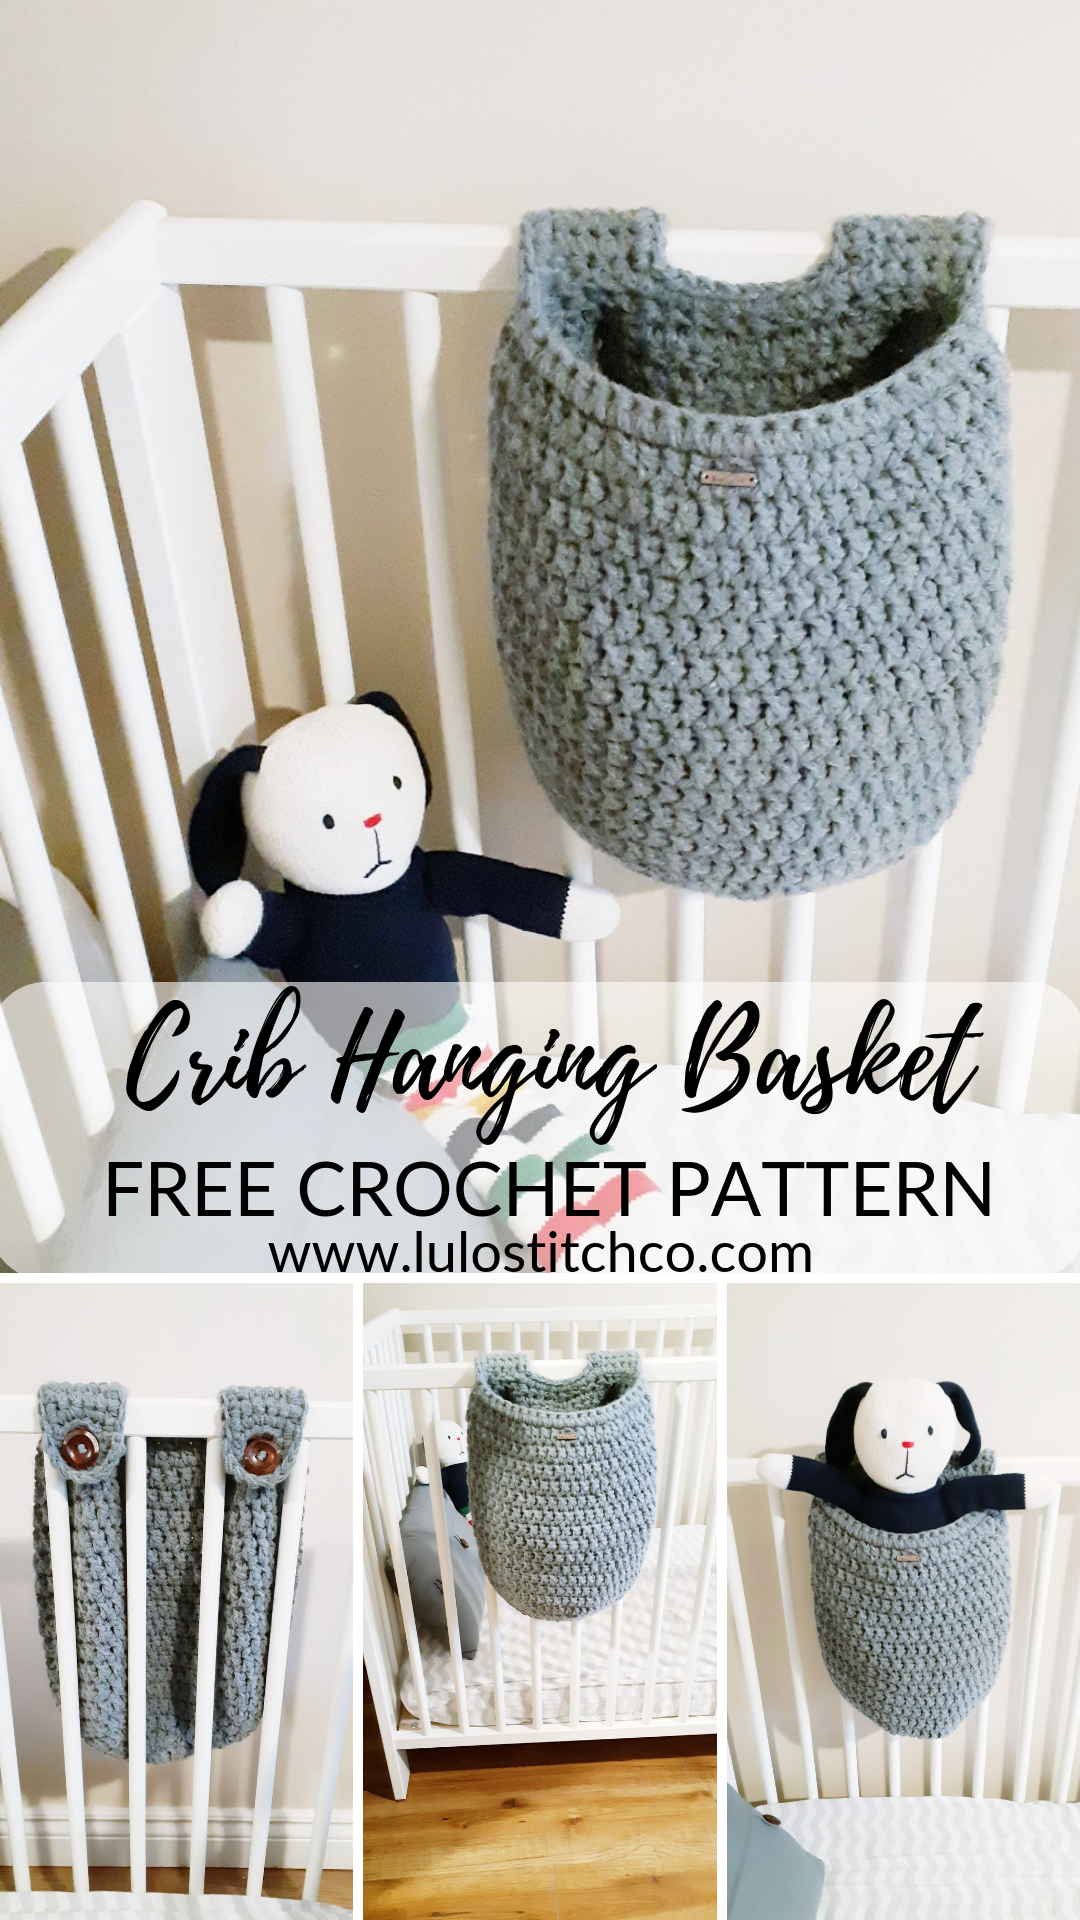 Add this handy basket to your nursery! #hangingbaskets